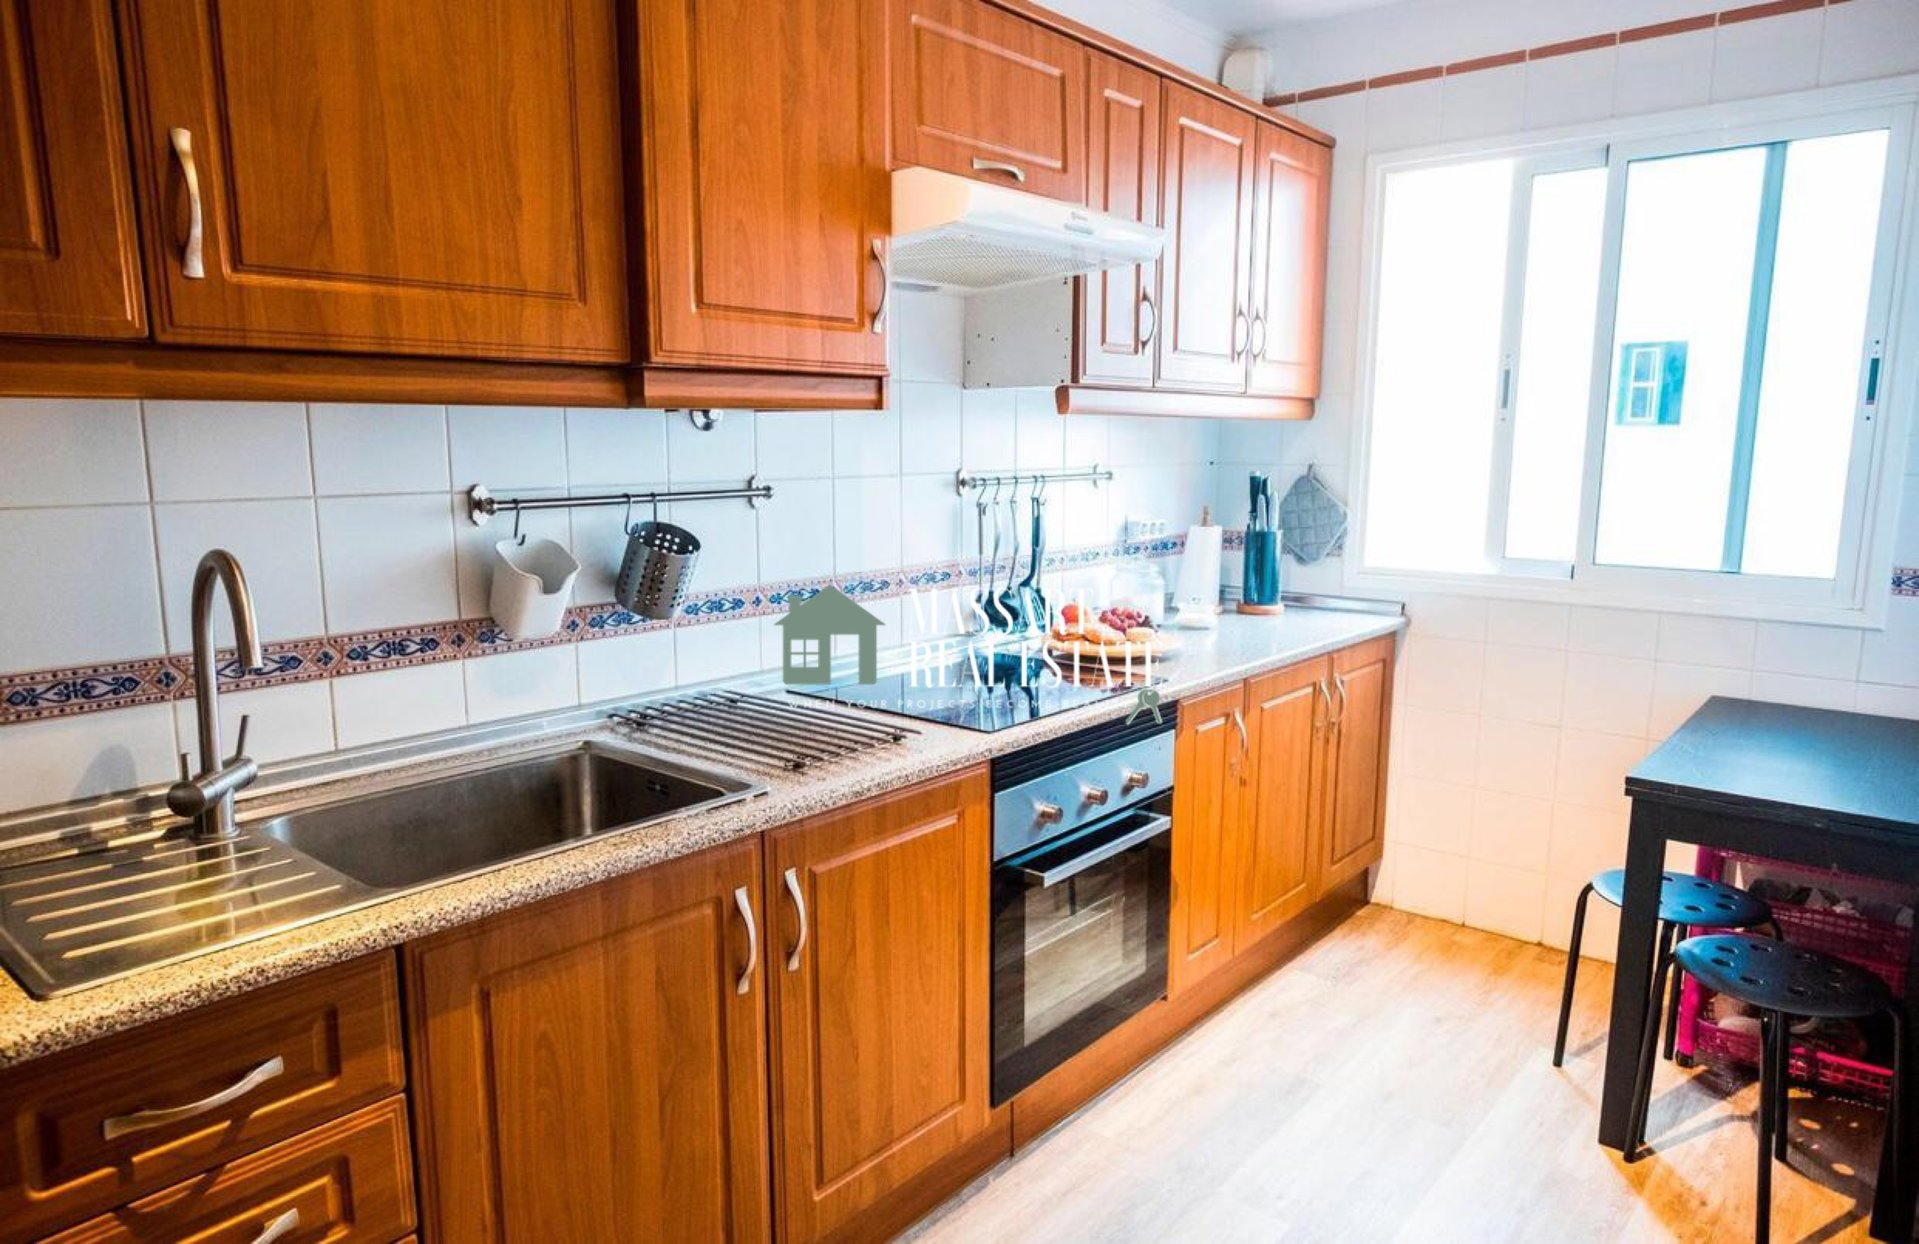 For sale in Granadilla de Abona, furnished apartment of 97 m2 characterized by its good state of conservation as well as its strategic distribution.